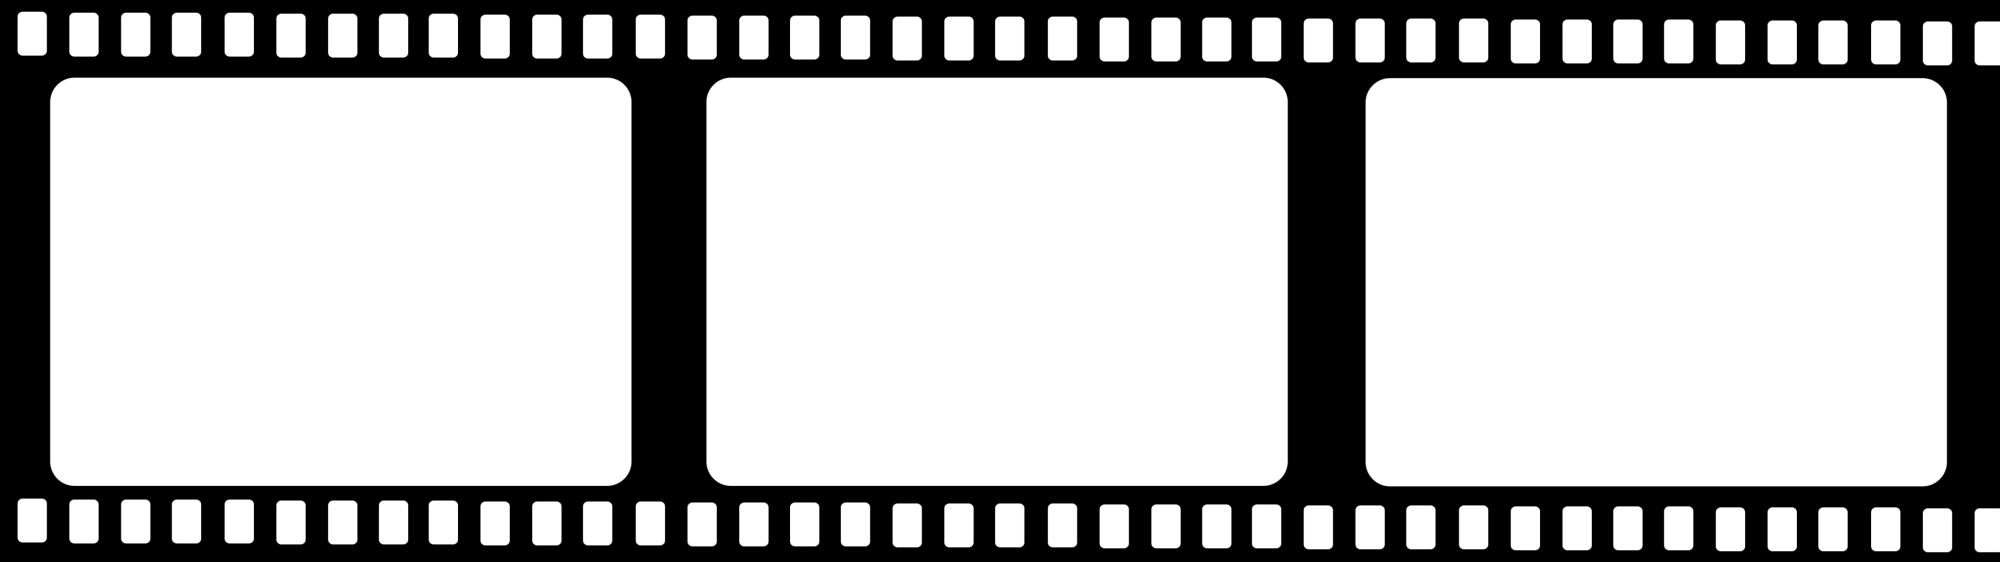 hight resolution of film reel clipart